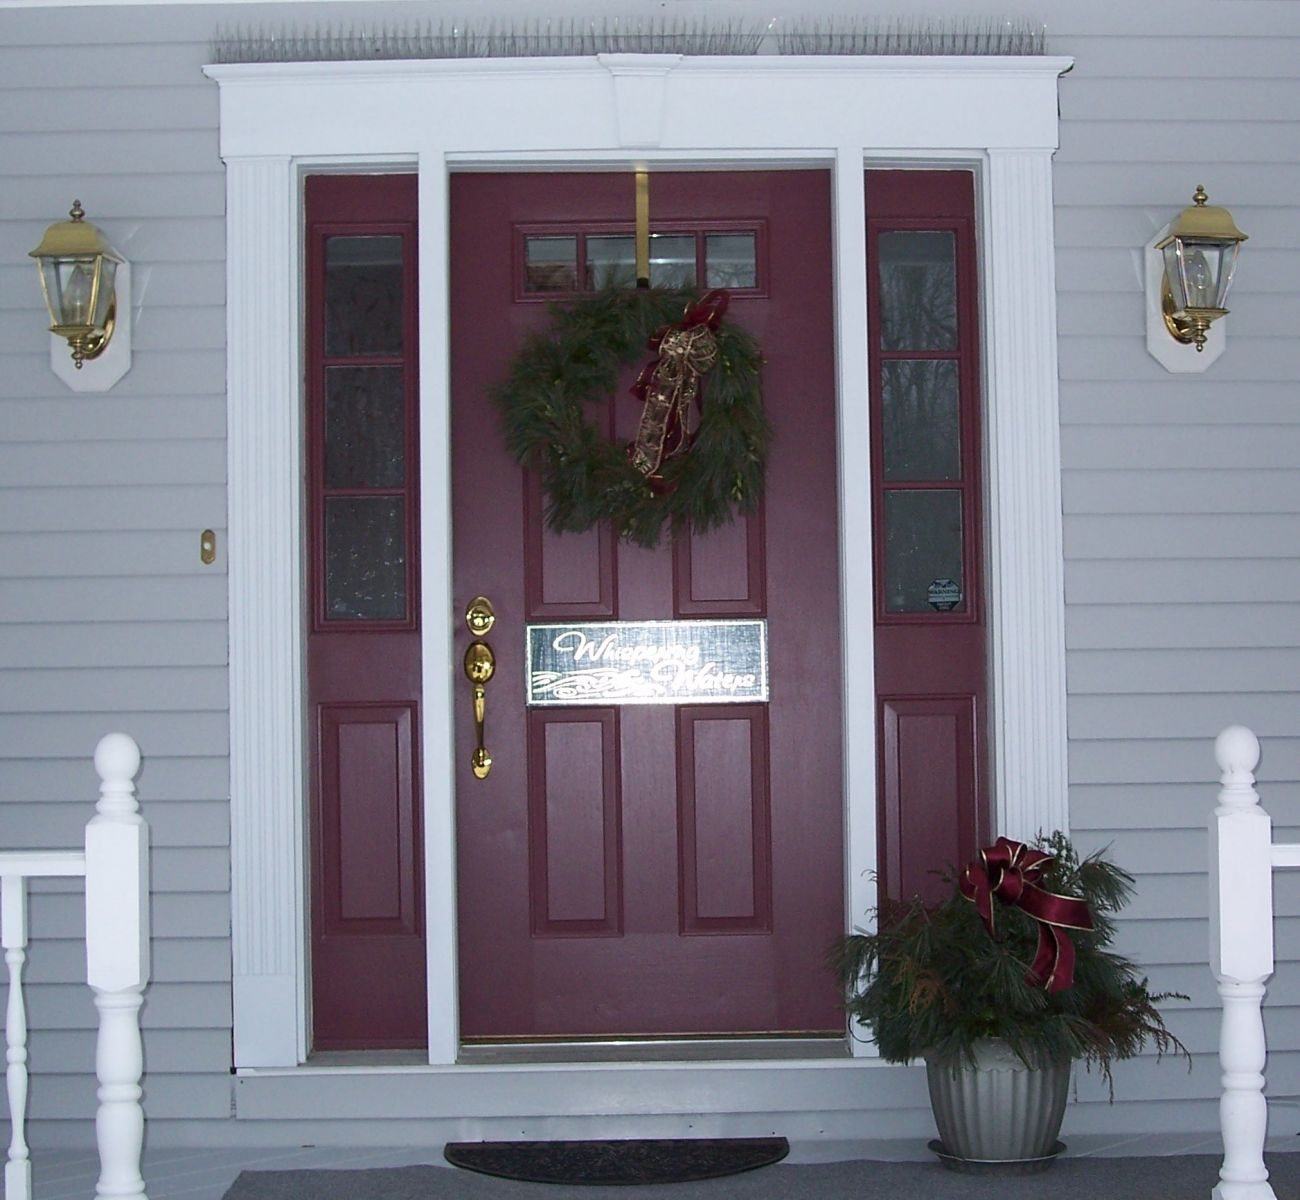 Whispering Waters Front Entrance for Full Body Healing